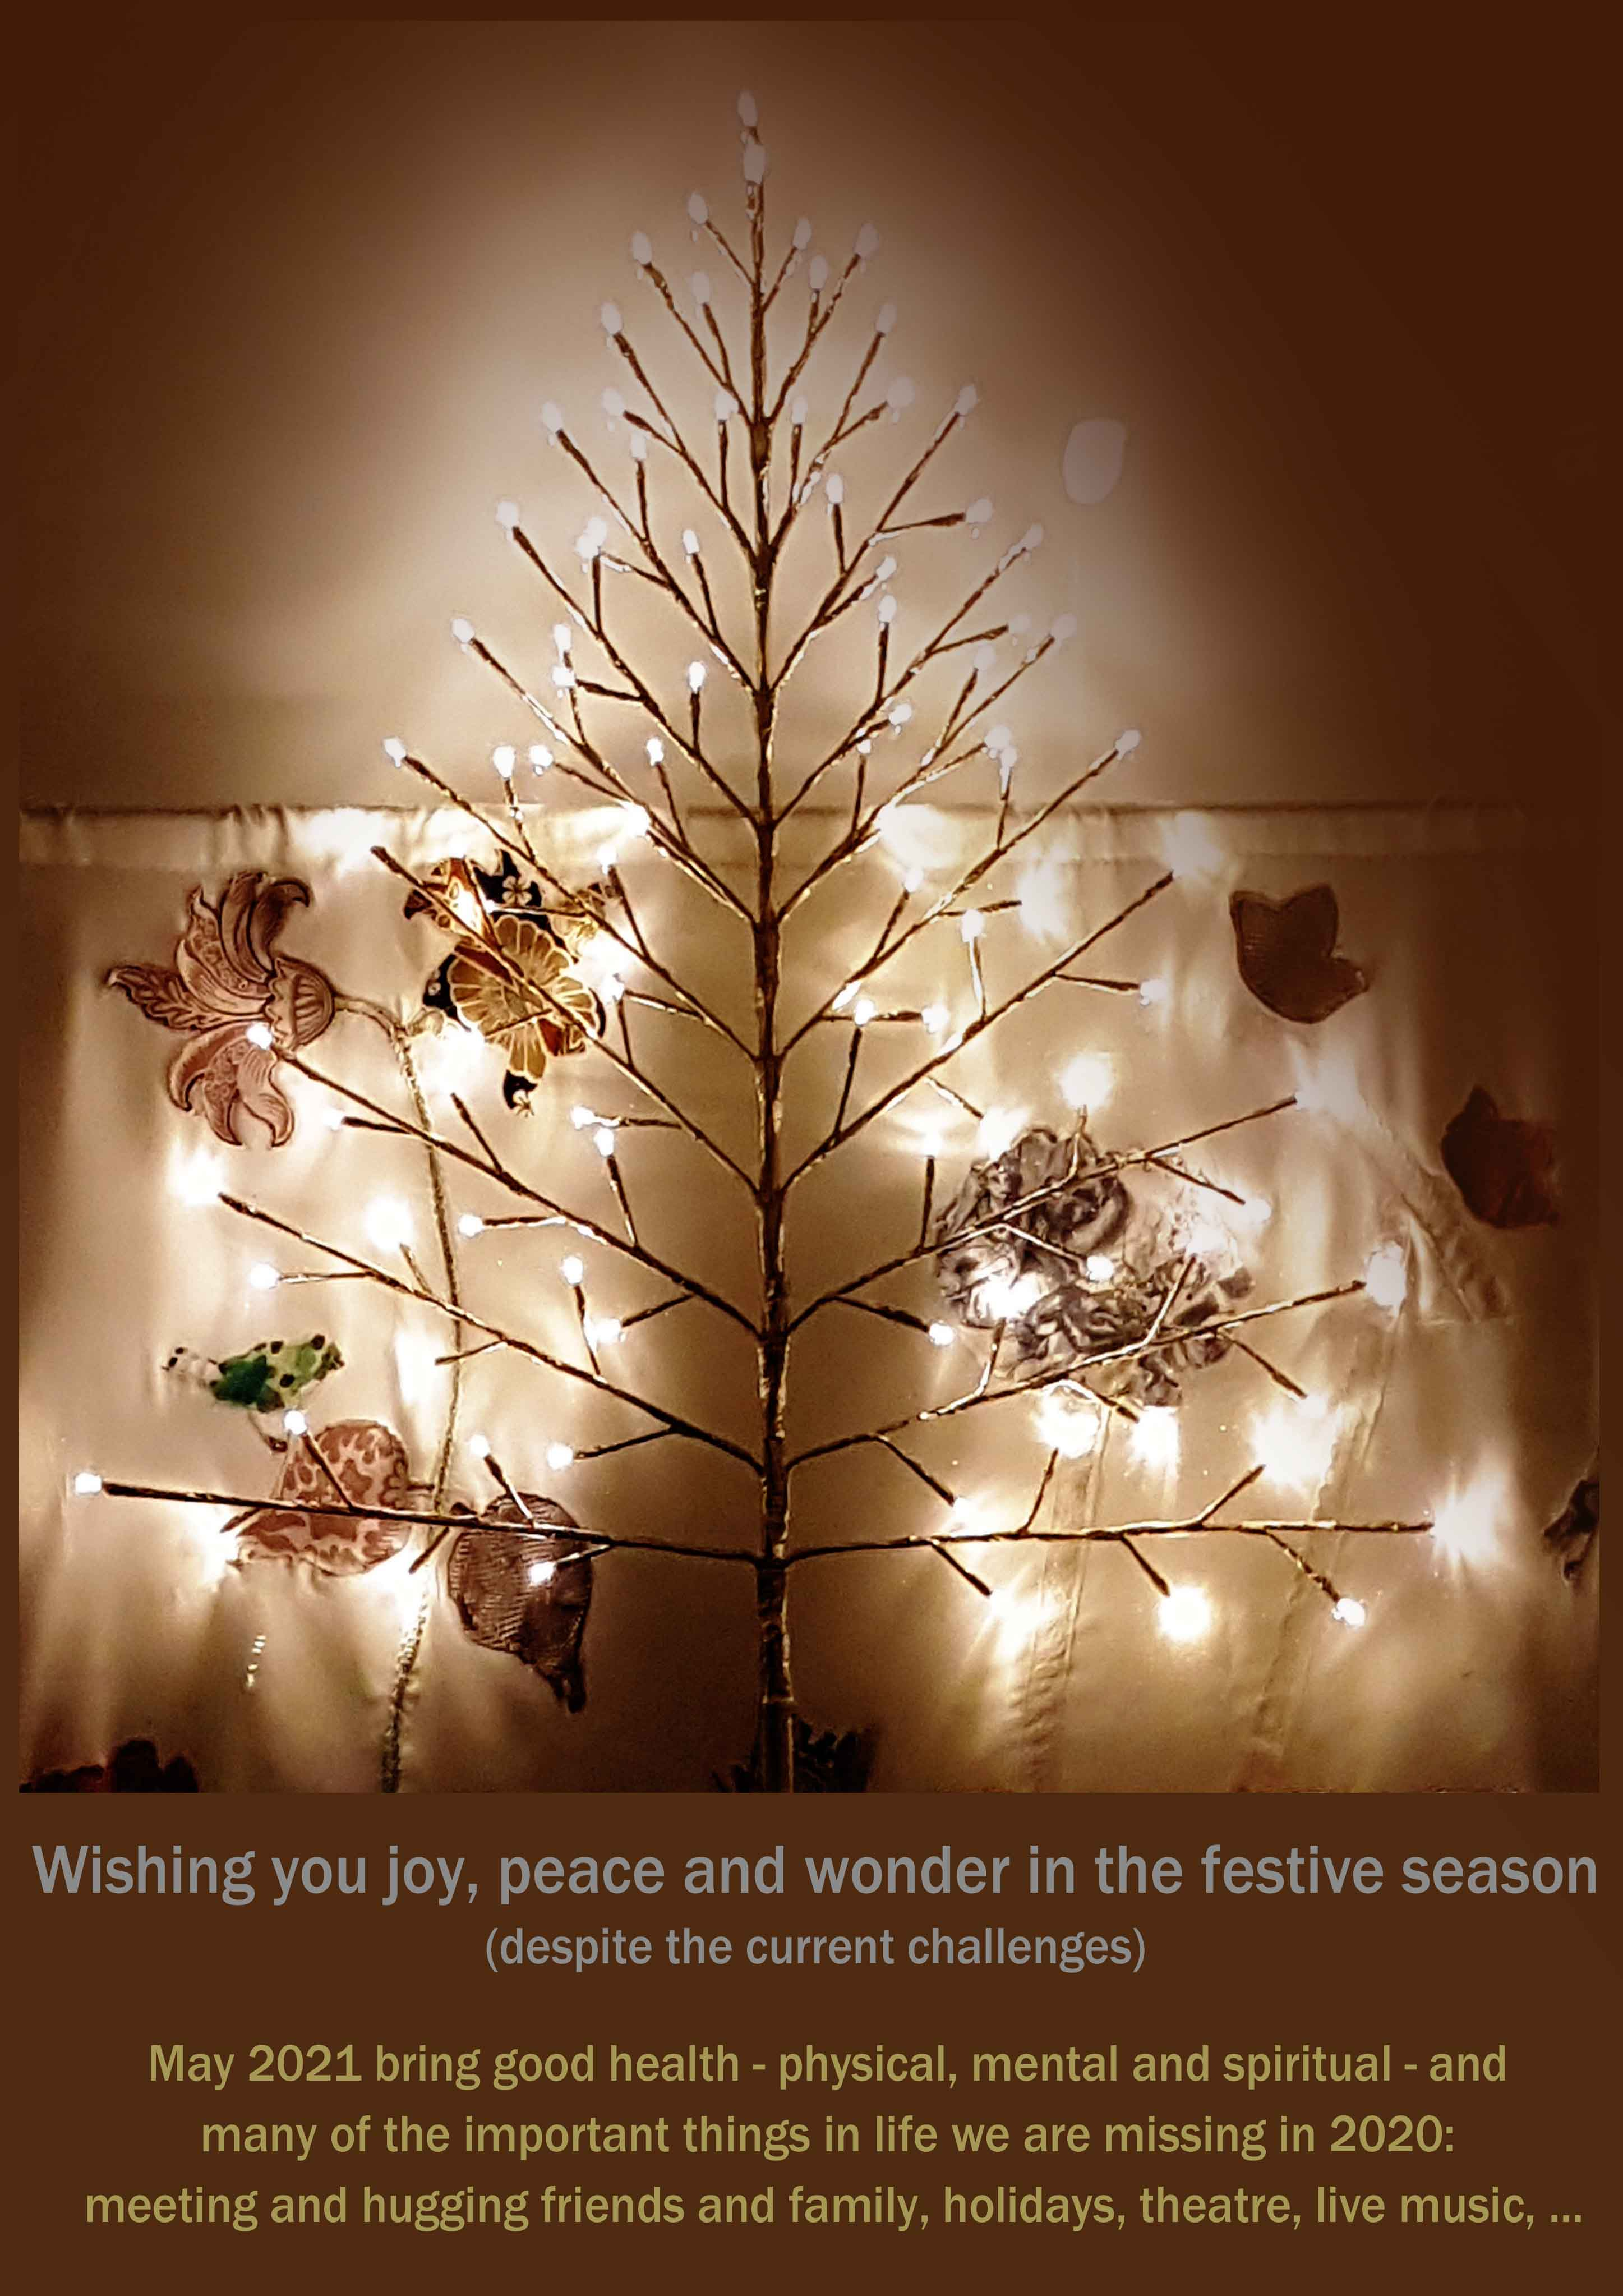 Wishing you joy, peace and wonder in the festive season (despite the current challenges).